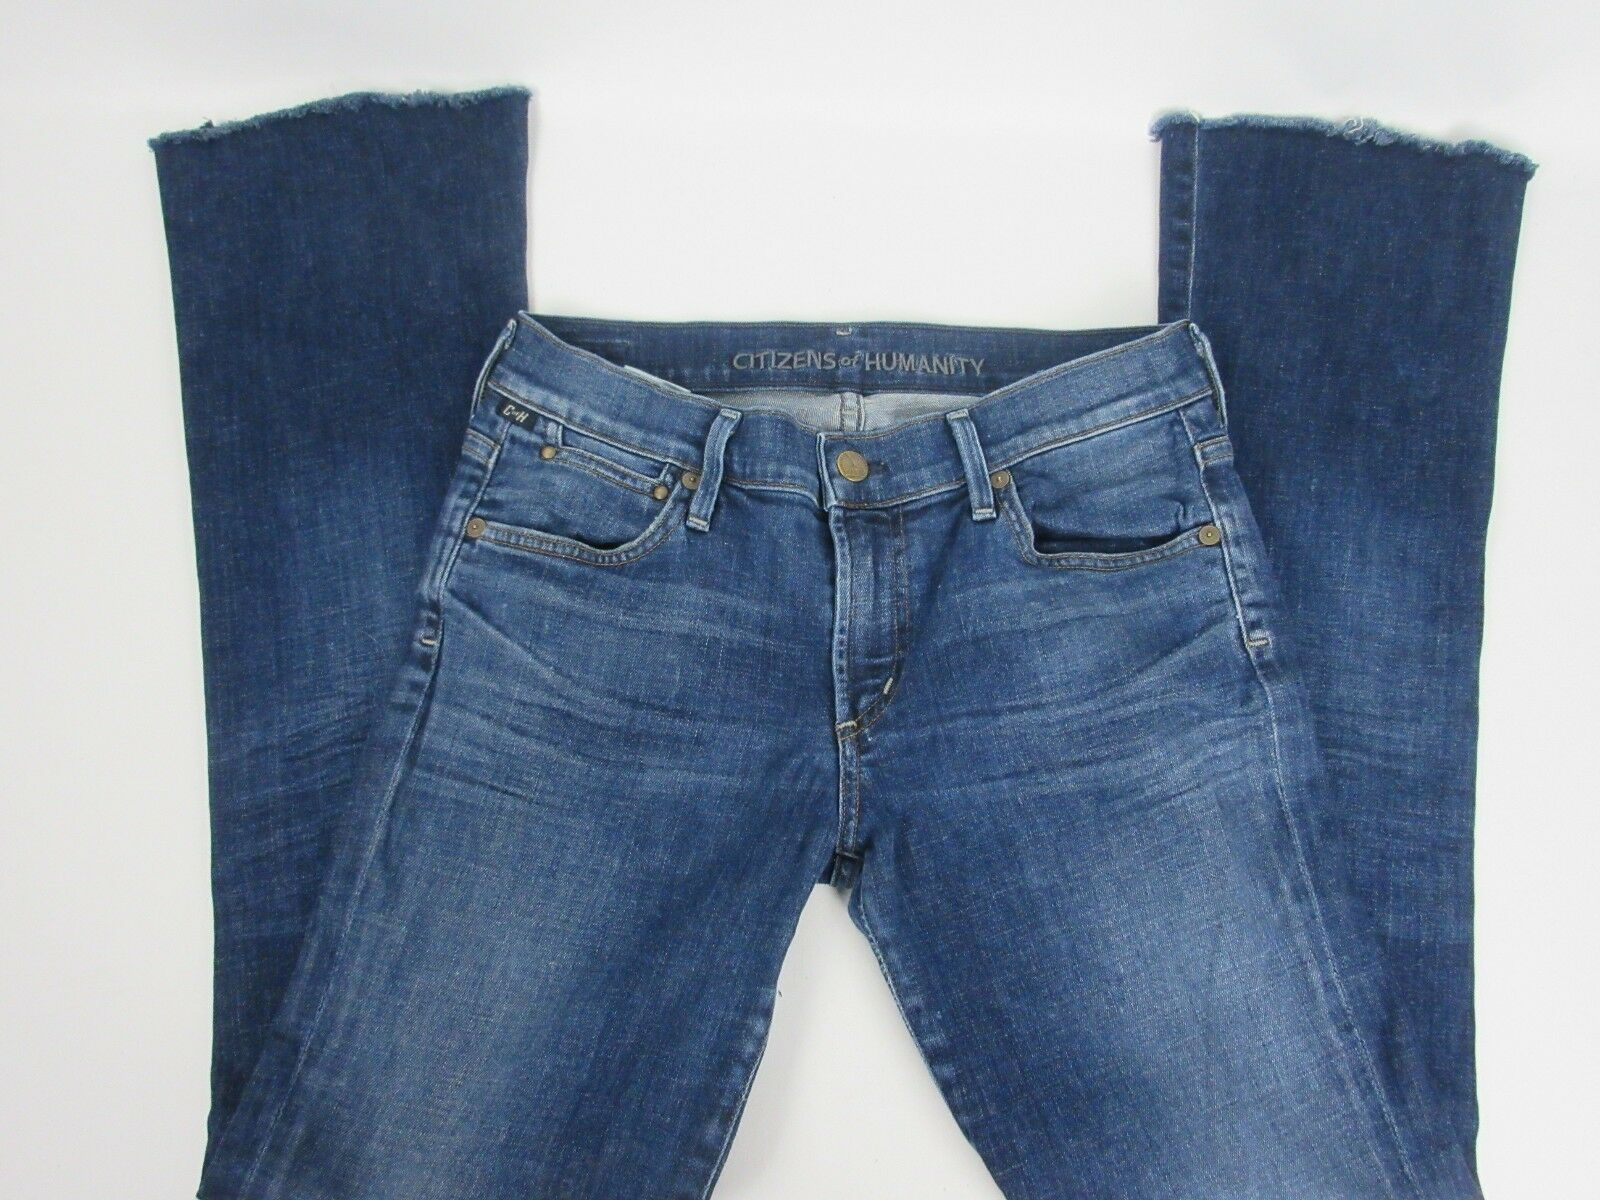 Citizens of Humanity Women's Jeans bluee Raw Hem Bootcut Size 28